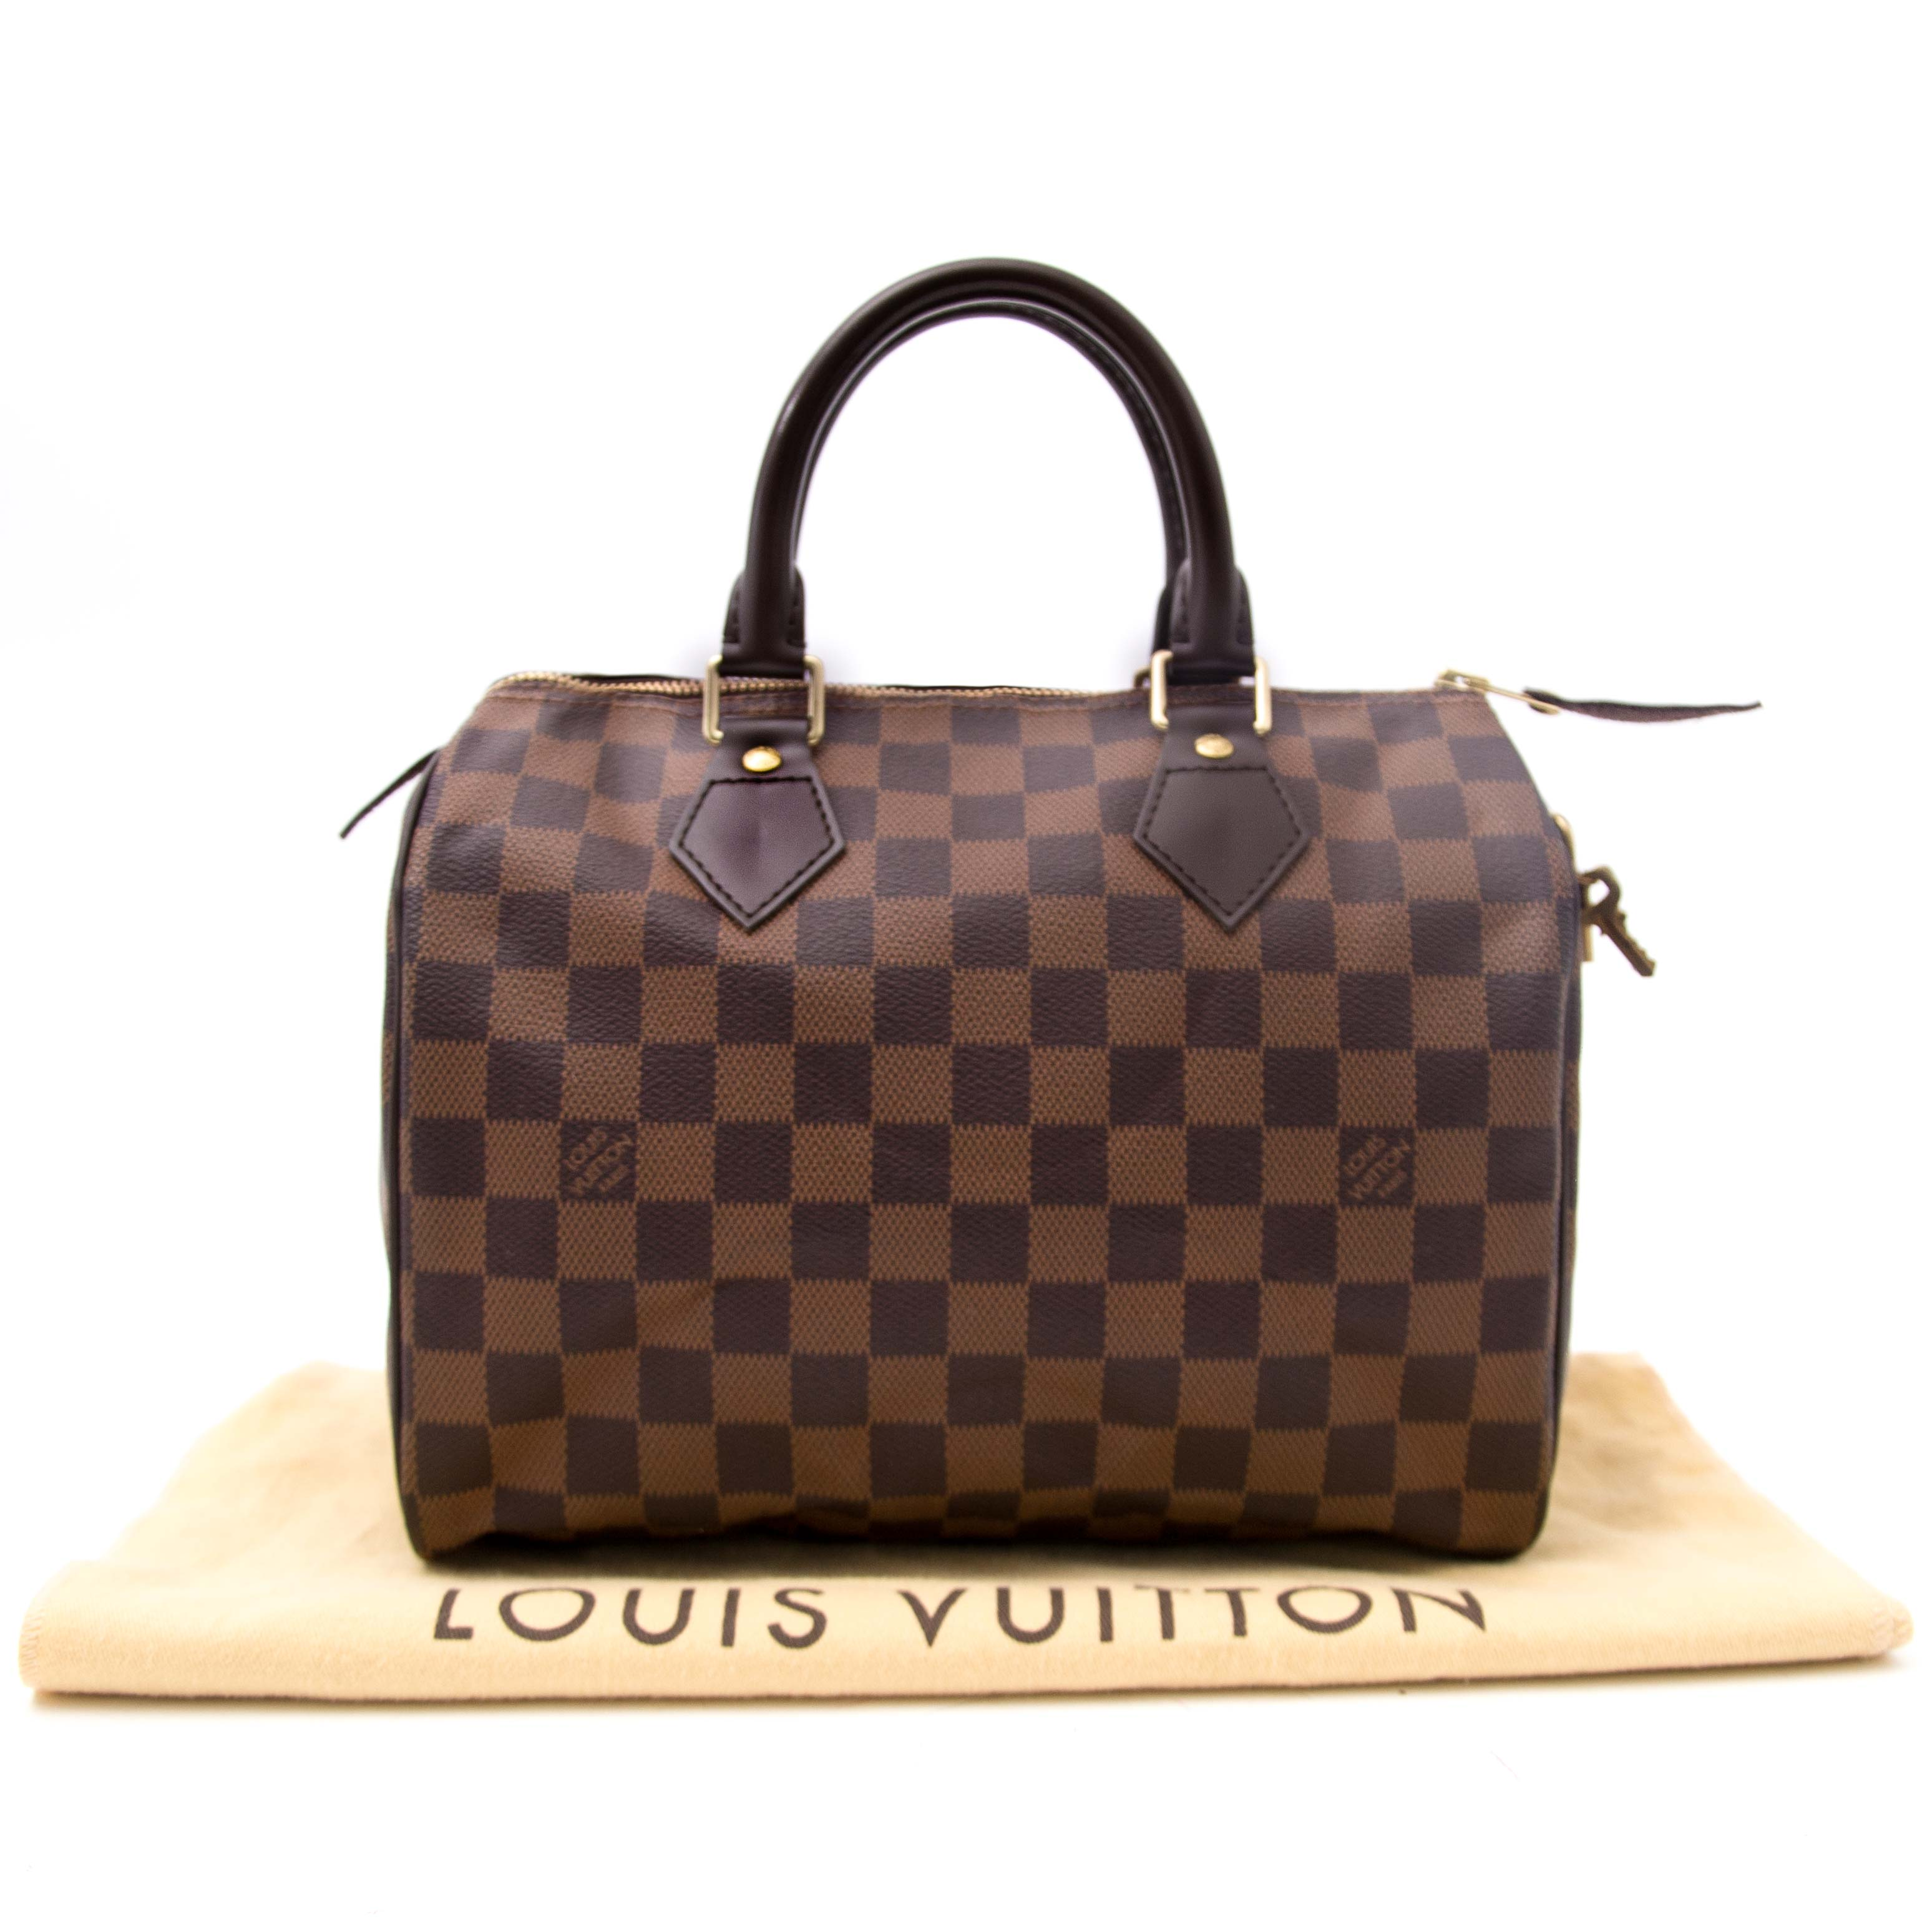 edafbe159f06 Labellov Louis Vuitton Speedy 30 ○ Buy and Sell Authentic Luxury